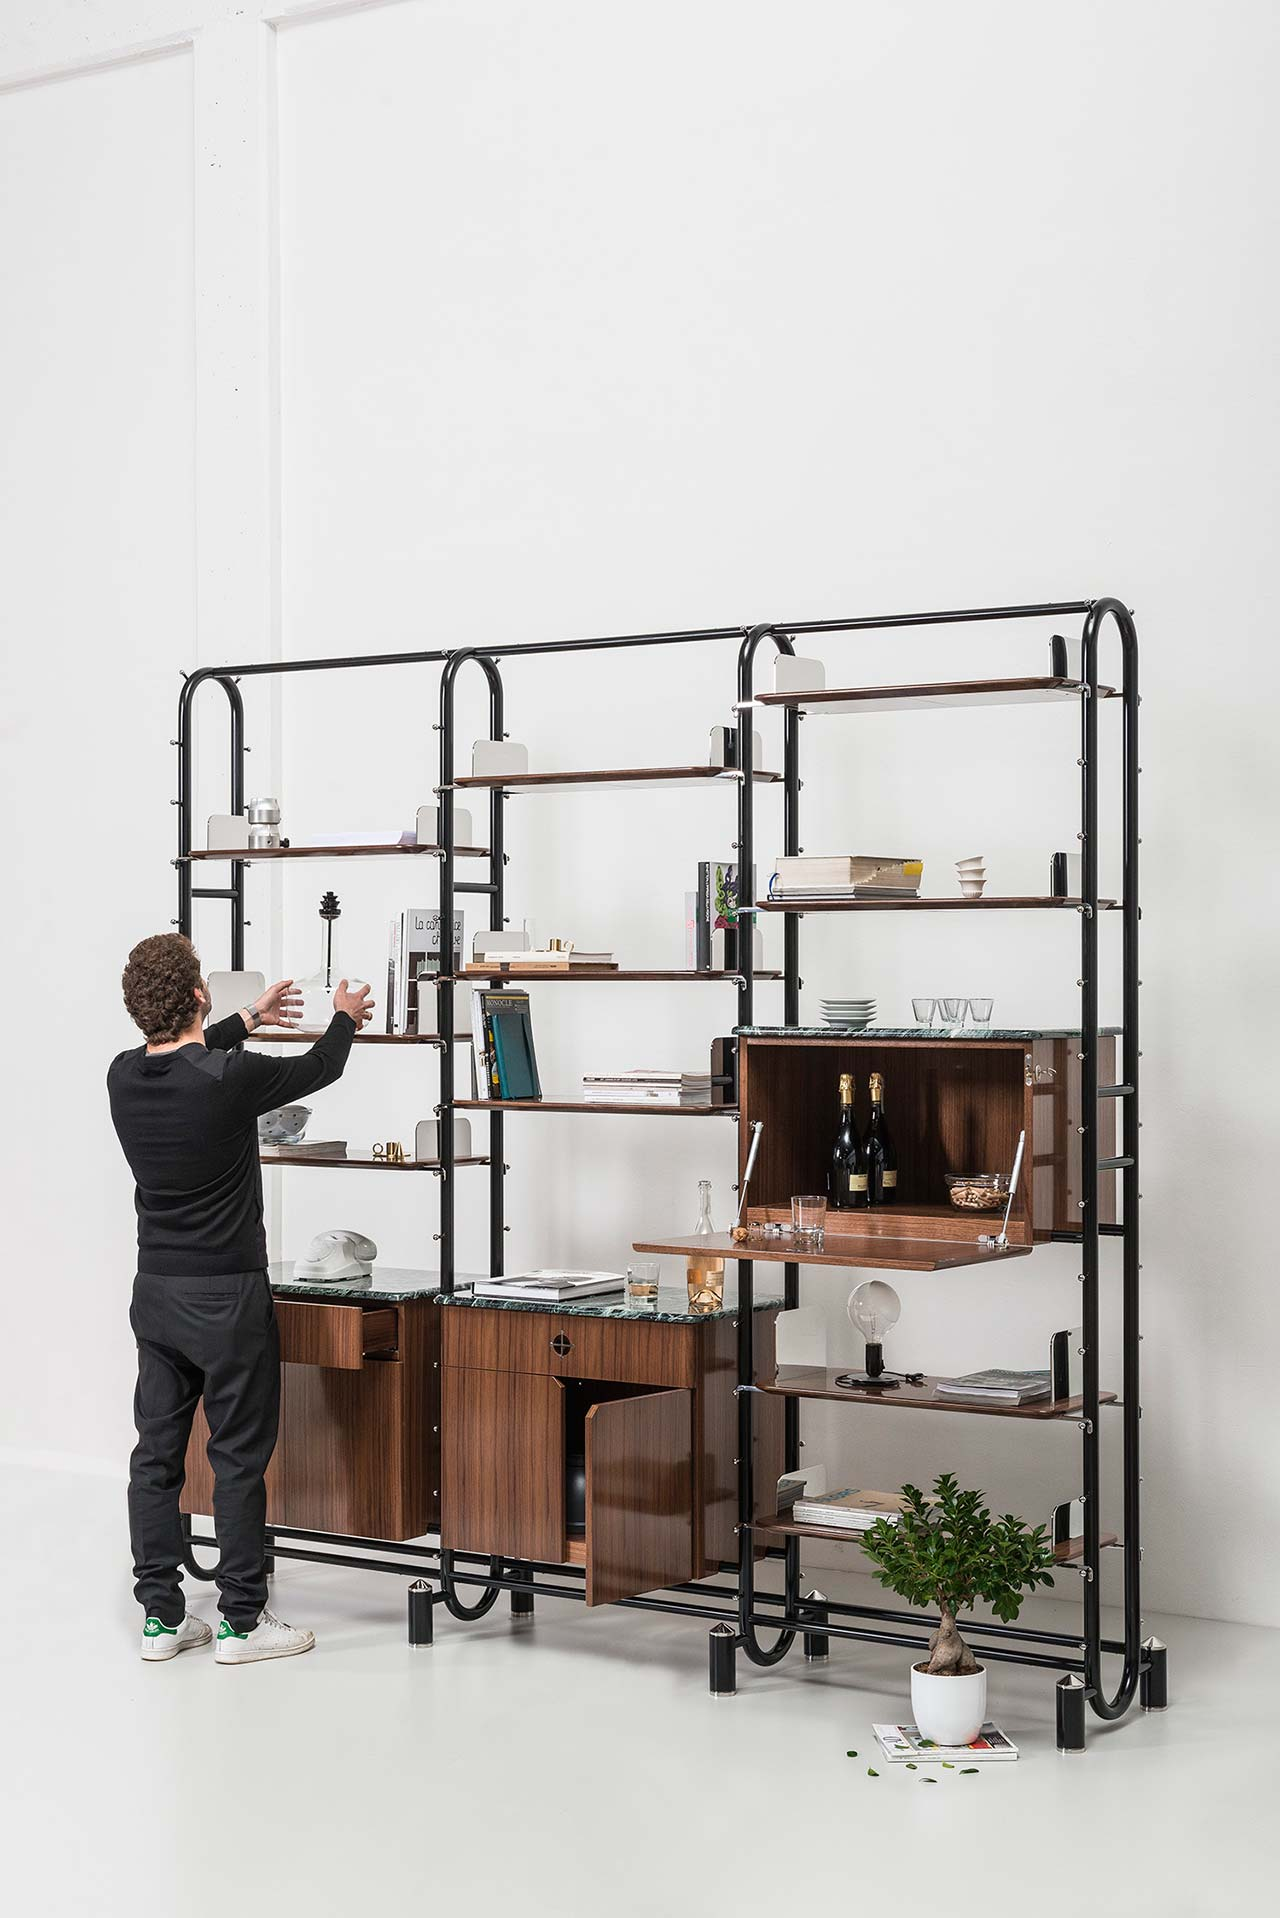 Circuit bookshelf by david/nicolas. Photo by Emmanuel Tortora.